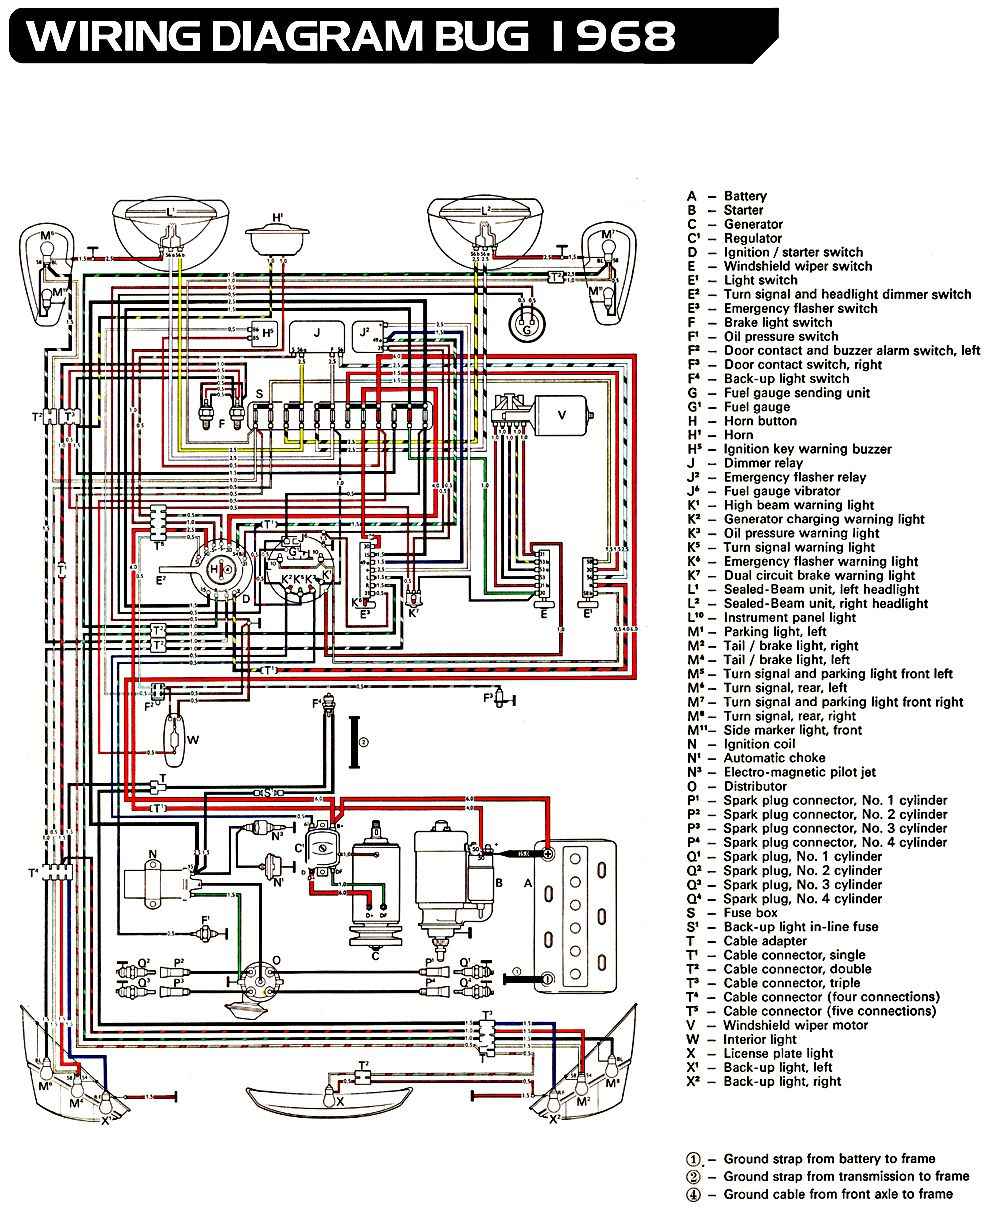 3a1908112d3826270ed5e3be362292bf vw bug ignition wiring diagram 73 vw wiring diagram free volkswagen wiring diagrams at readyjetset.co